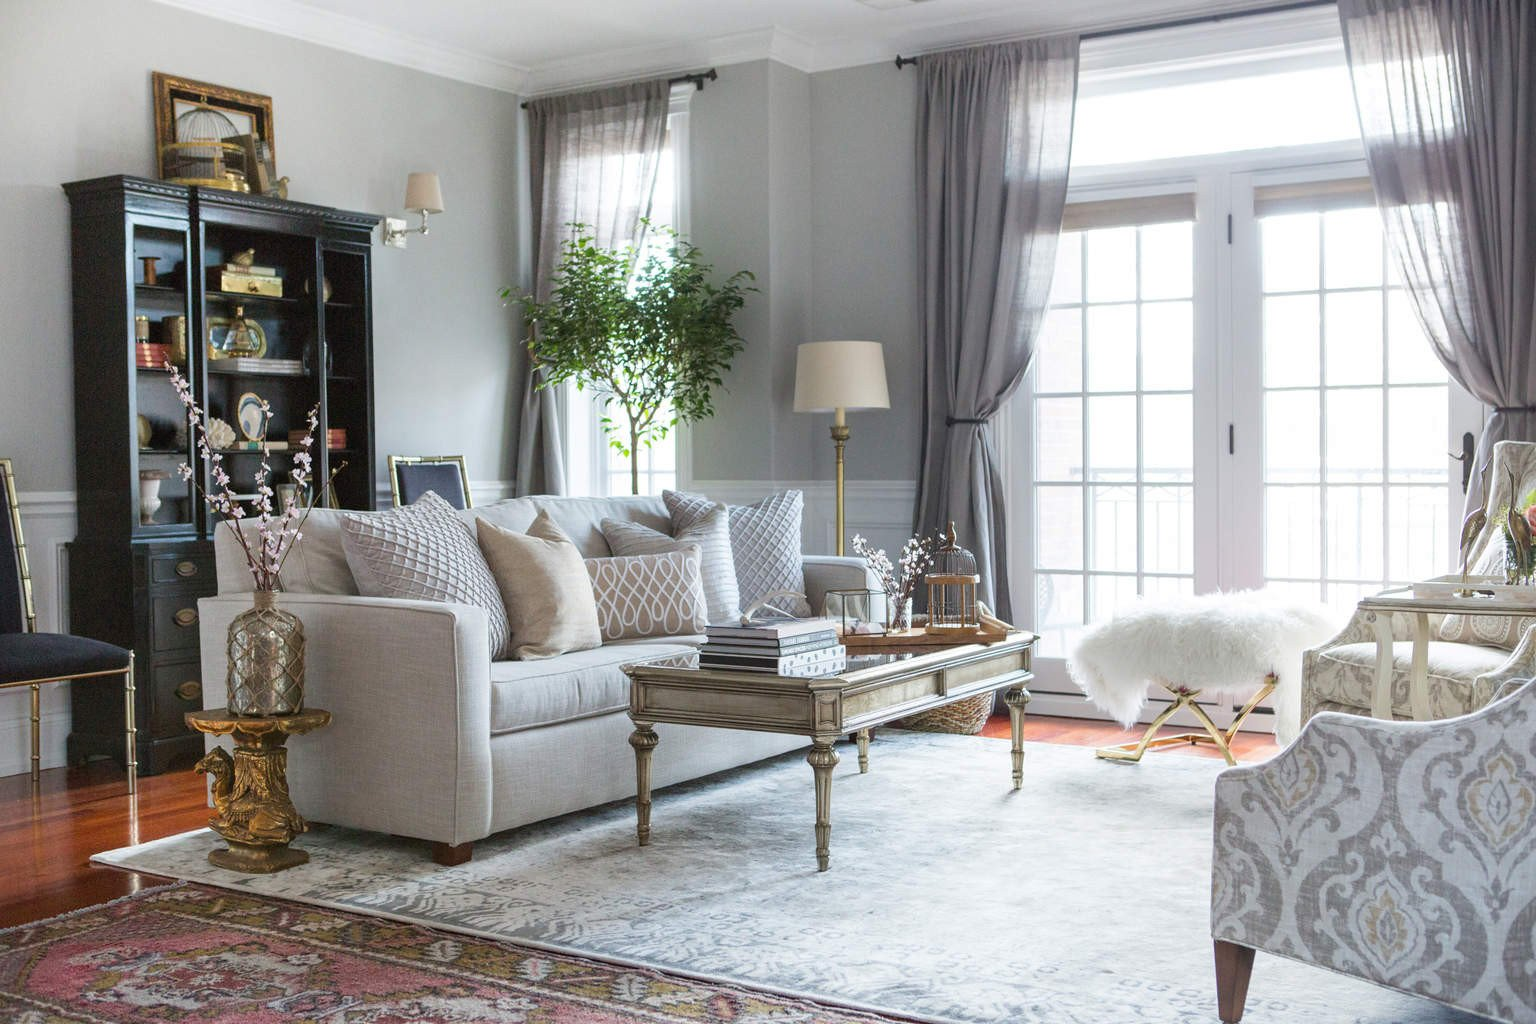 Pictures for Living Room Decor Best Of Centered by Design Neutral and Gray Living Room Decor